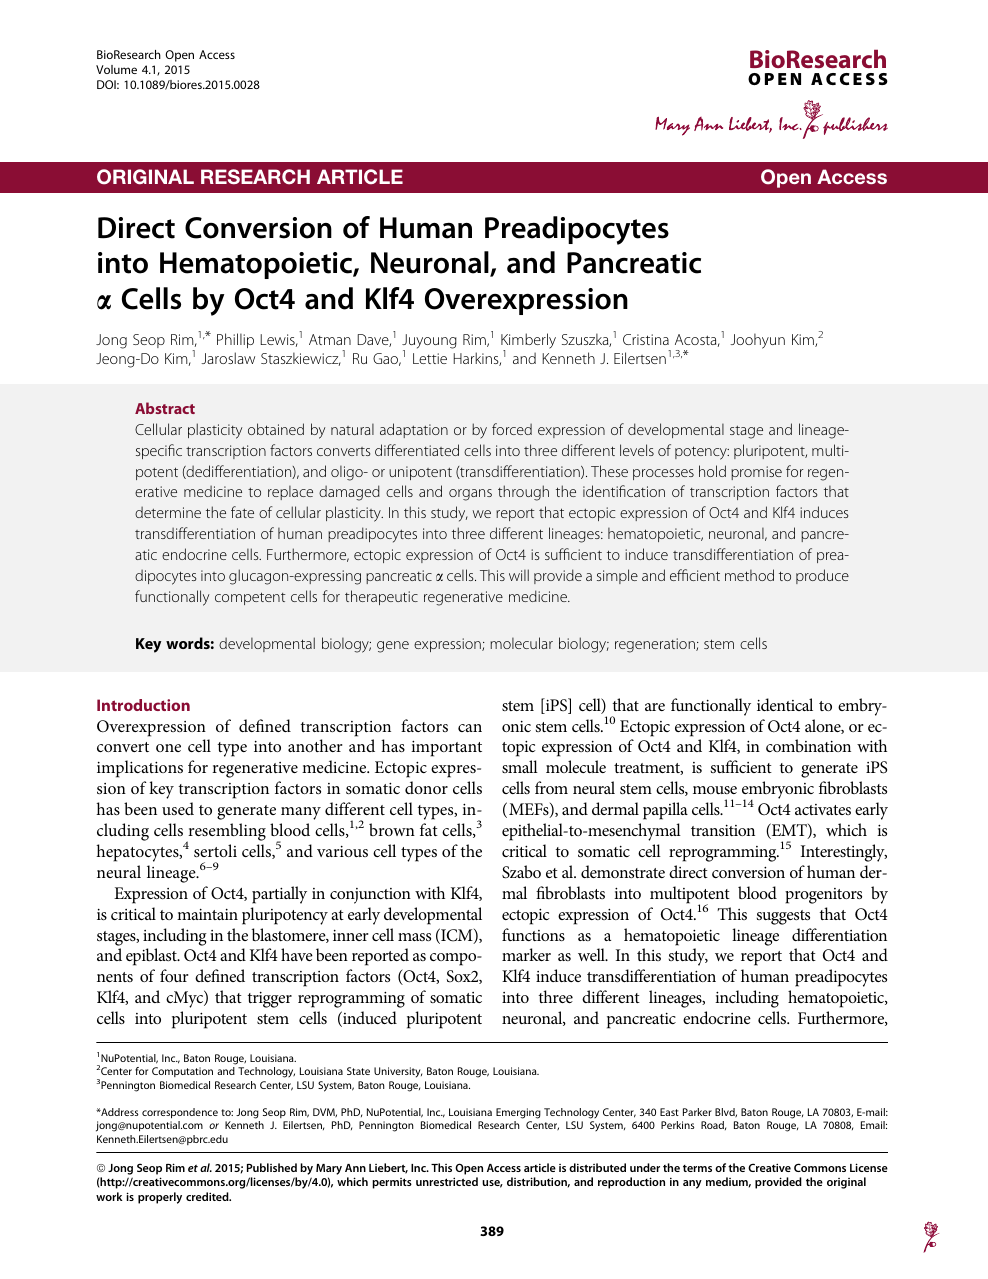 Direct Conversion of Human Preadipocytes into Hematopoietic